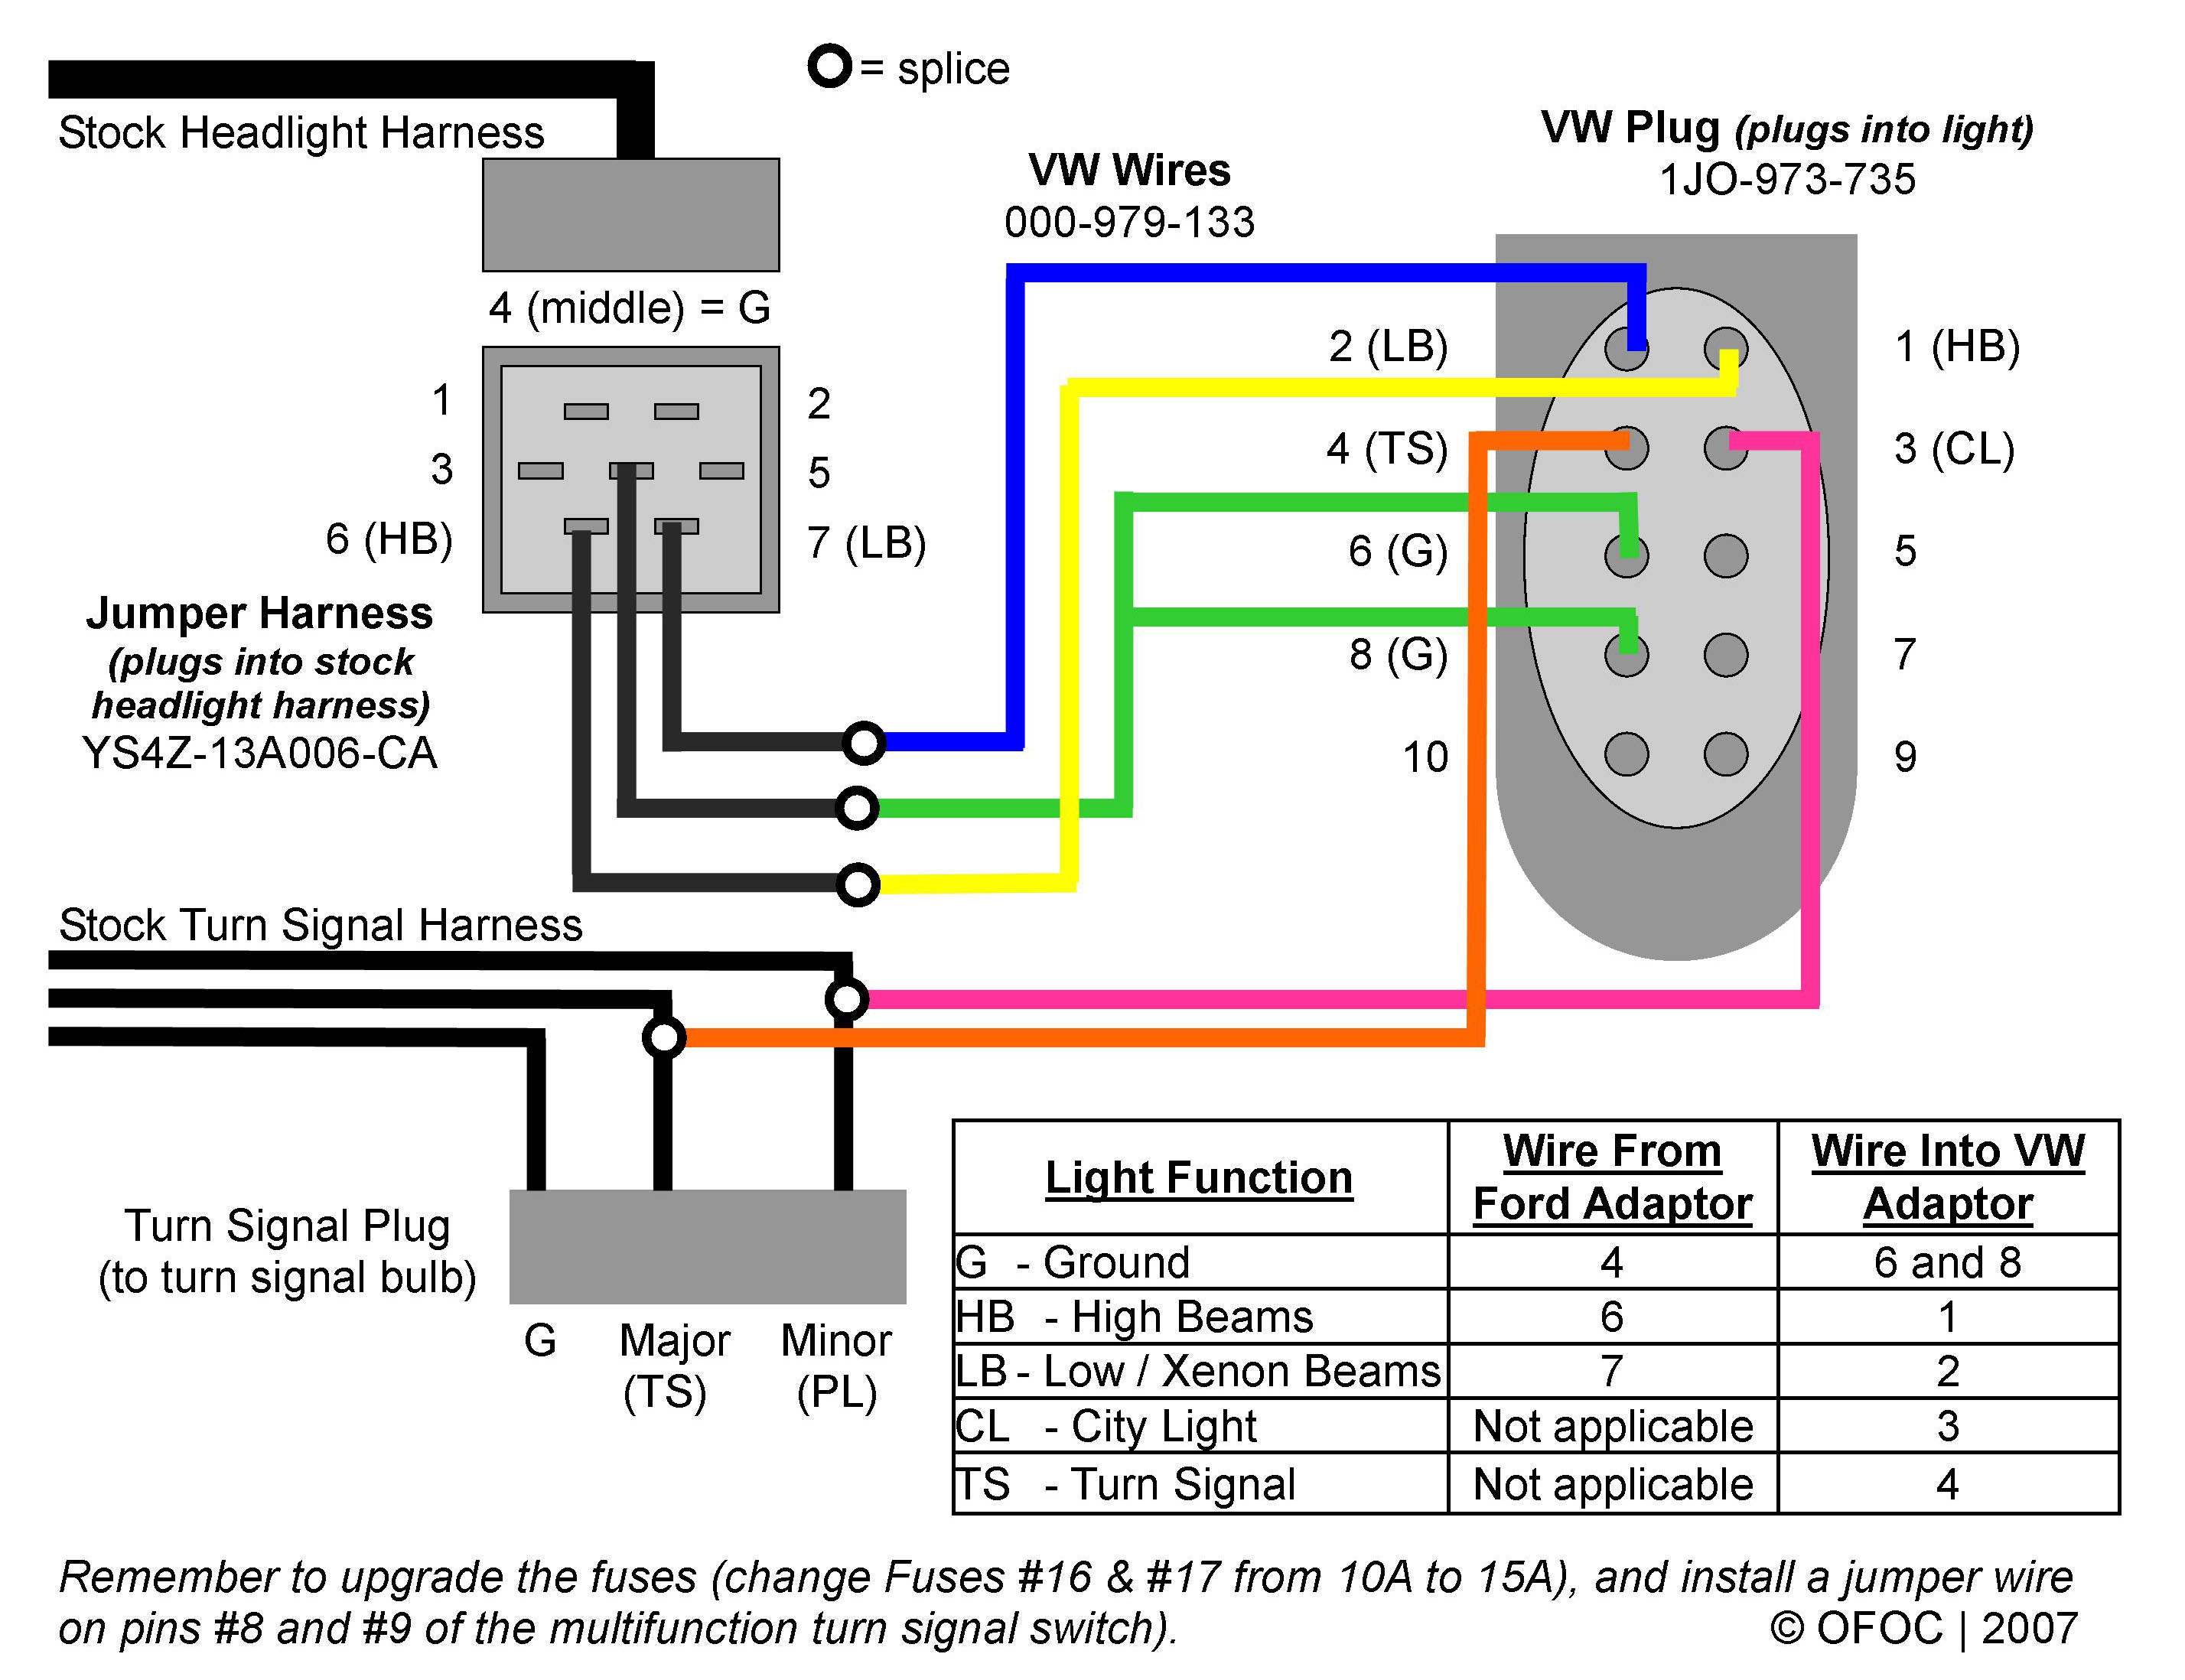 wiringschematic how to vw wiring hack (convert your car to euro mach headlights 3 Wire Headlight Wiring Diagram at soozxer.org